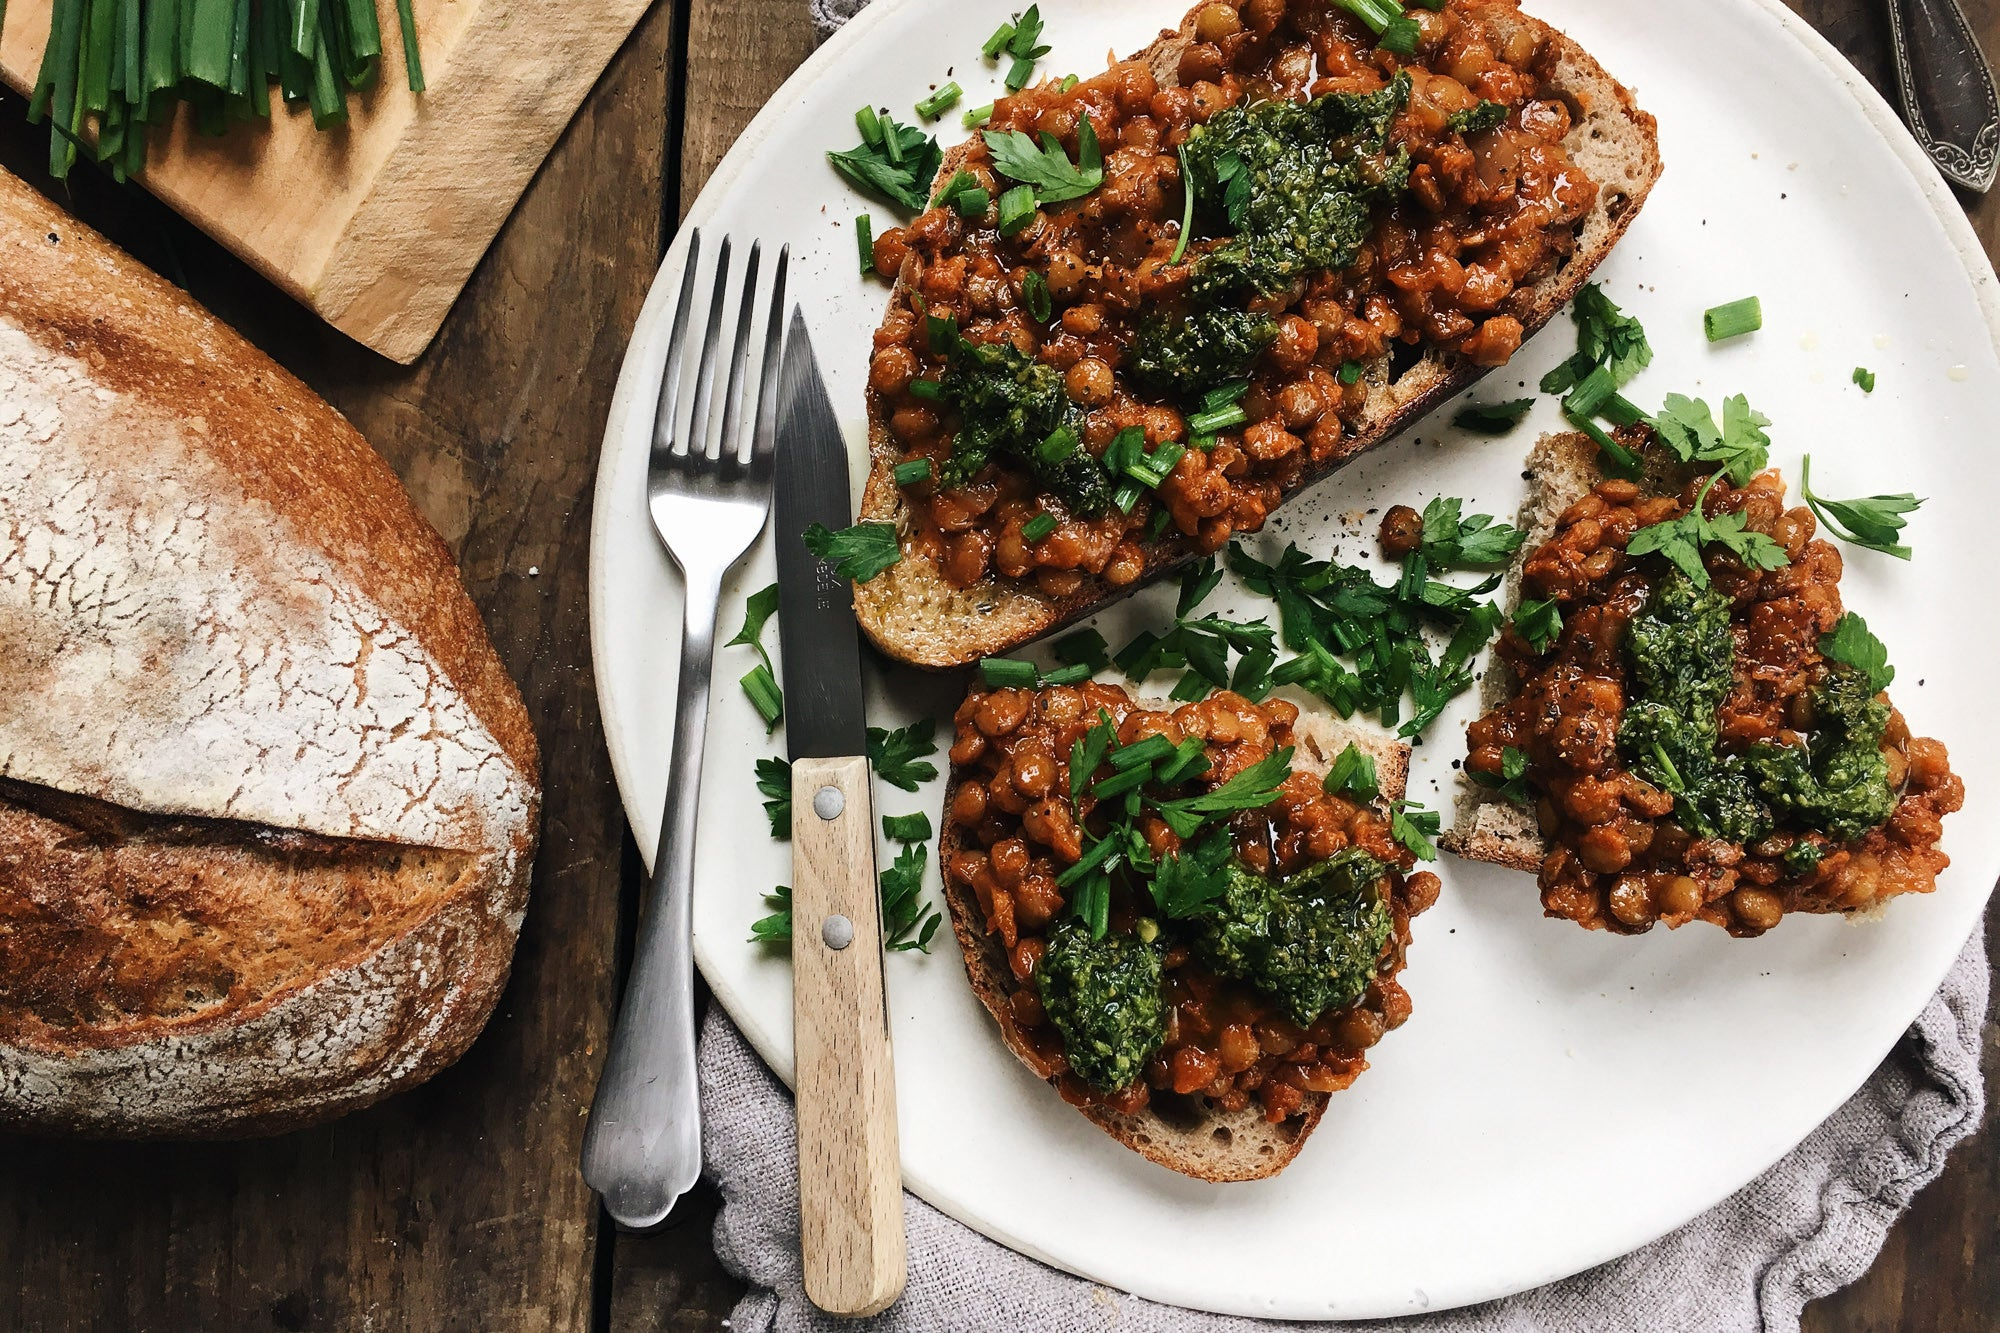 Easy Baked Laird Lentils